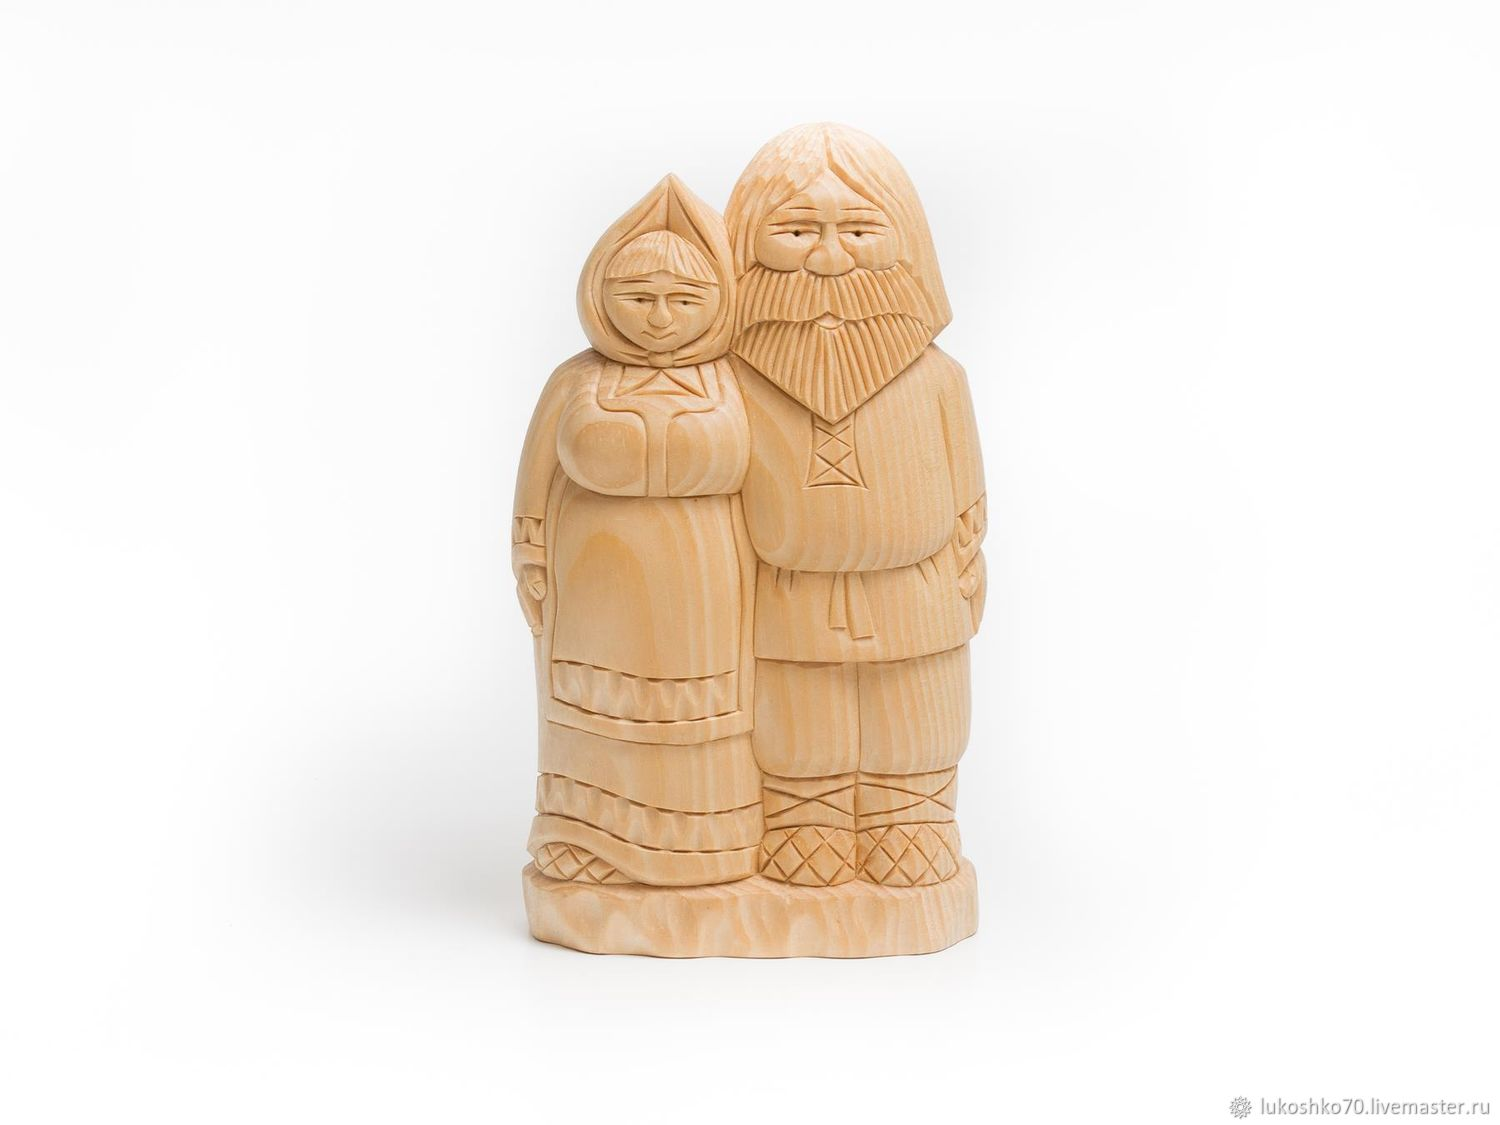 Figurine wooden. Figurines made of wood. My grandparents, Figurine, Tomsk,  Фото №1